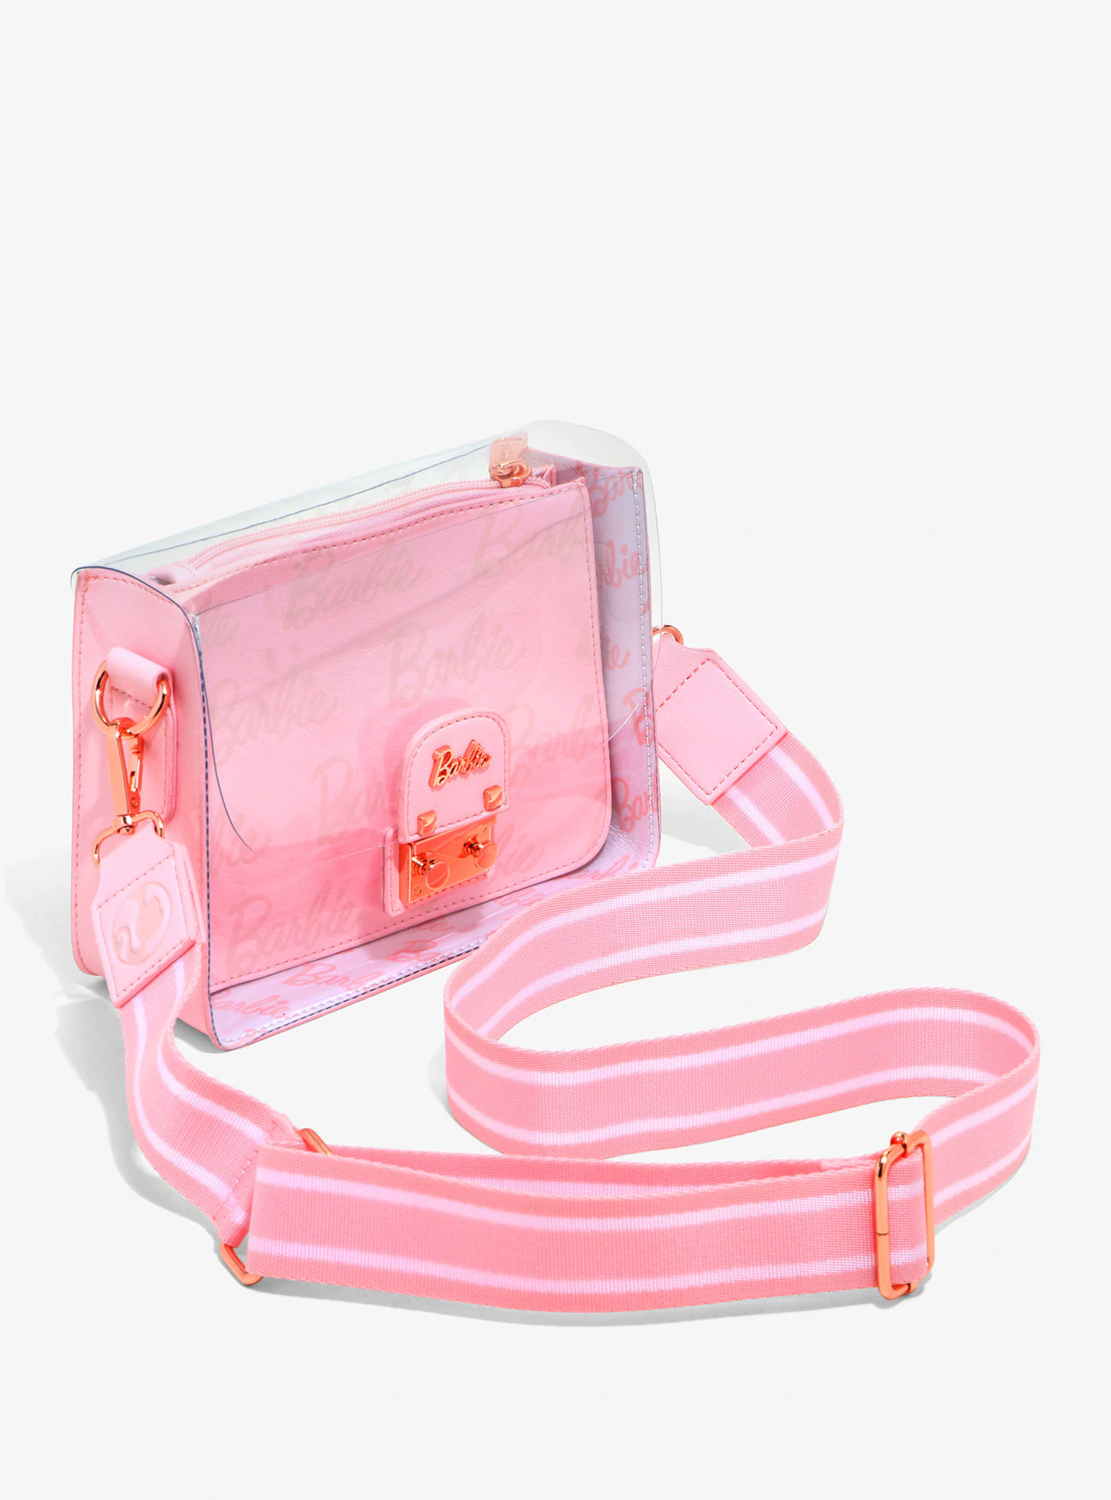 Bolsa Doble Barbie RosaT